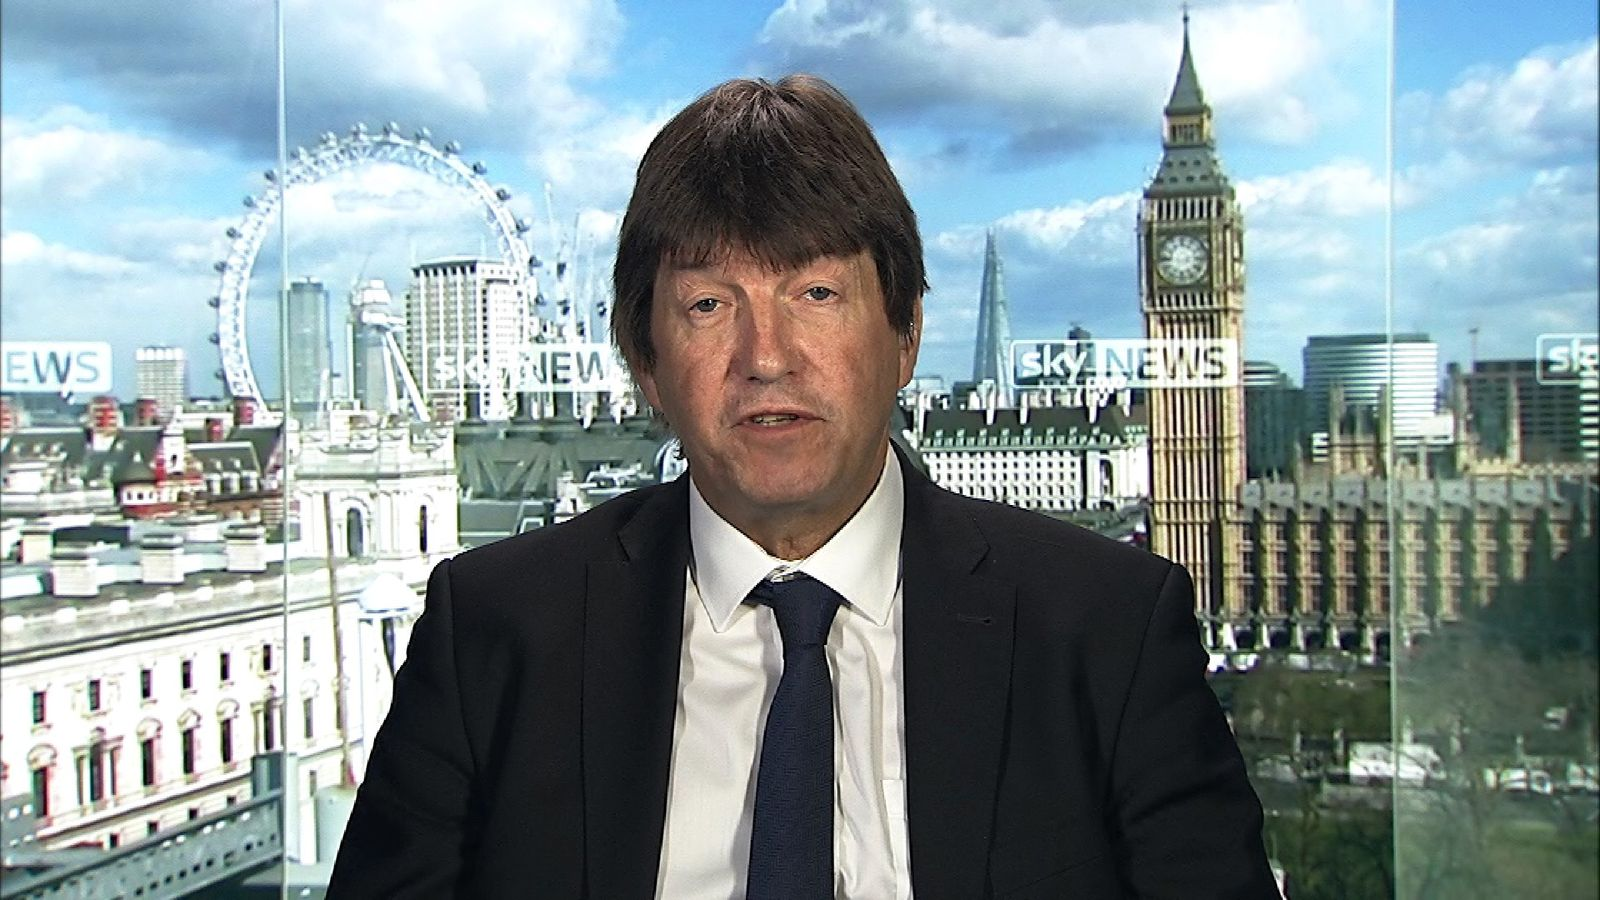 Lord Porter, the Chairman of the Local Government Association, says councils all over the country want to help residents.